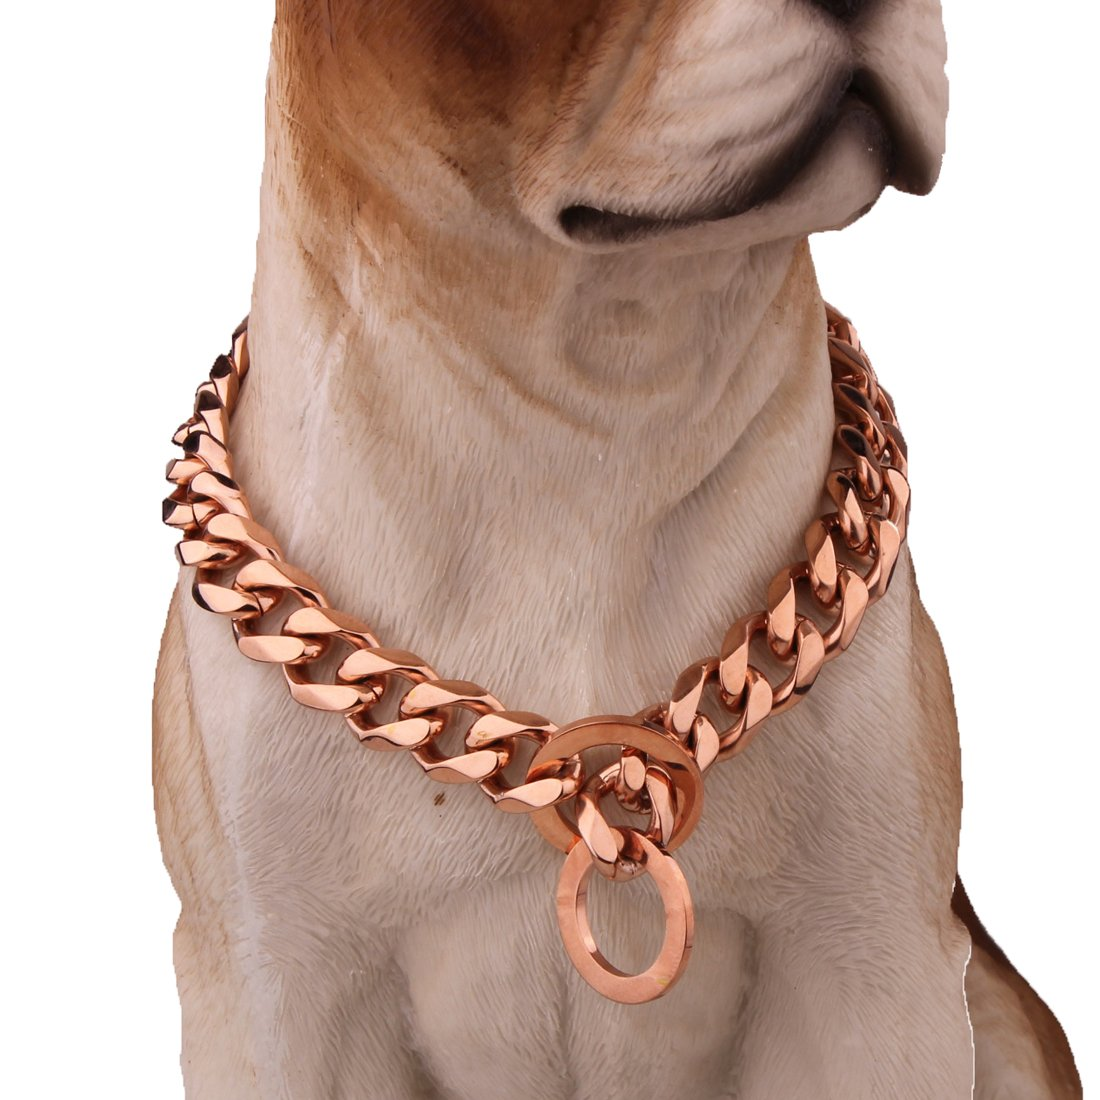 Jewelry Kingdom 1 Elegant Rose Gold 12mm Stainless Steel Cuban Link Chain Dog Collars,12-36inch (24inch)